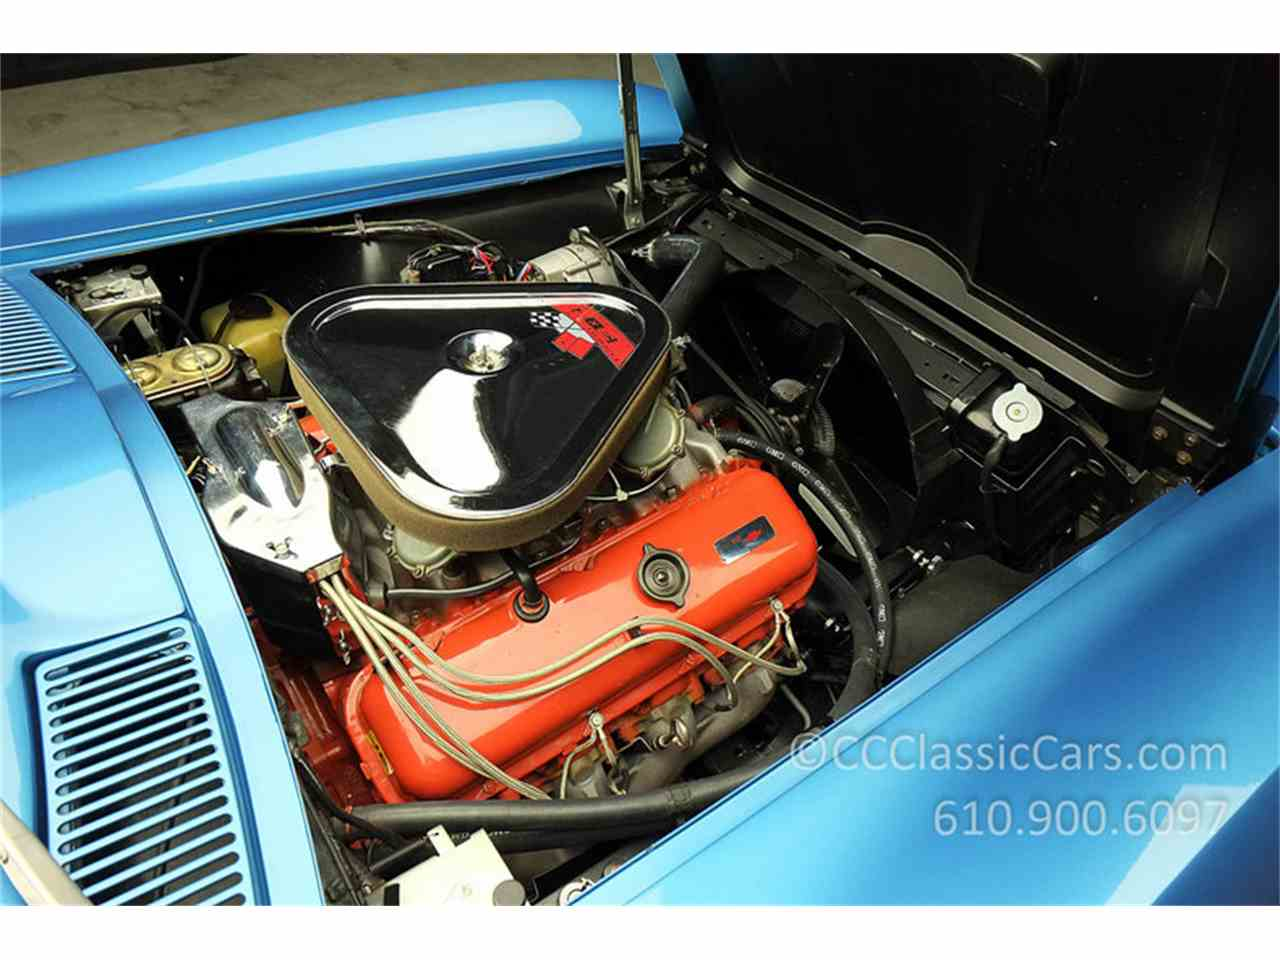 Large Picture of 1967 Chevrolet Corvette located in West Chester Pennsylvania Auction Vehicle - JV9S